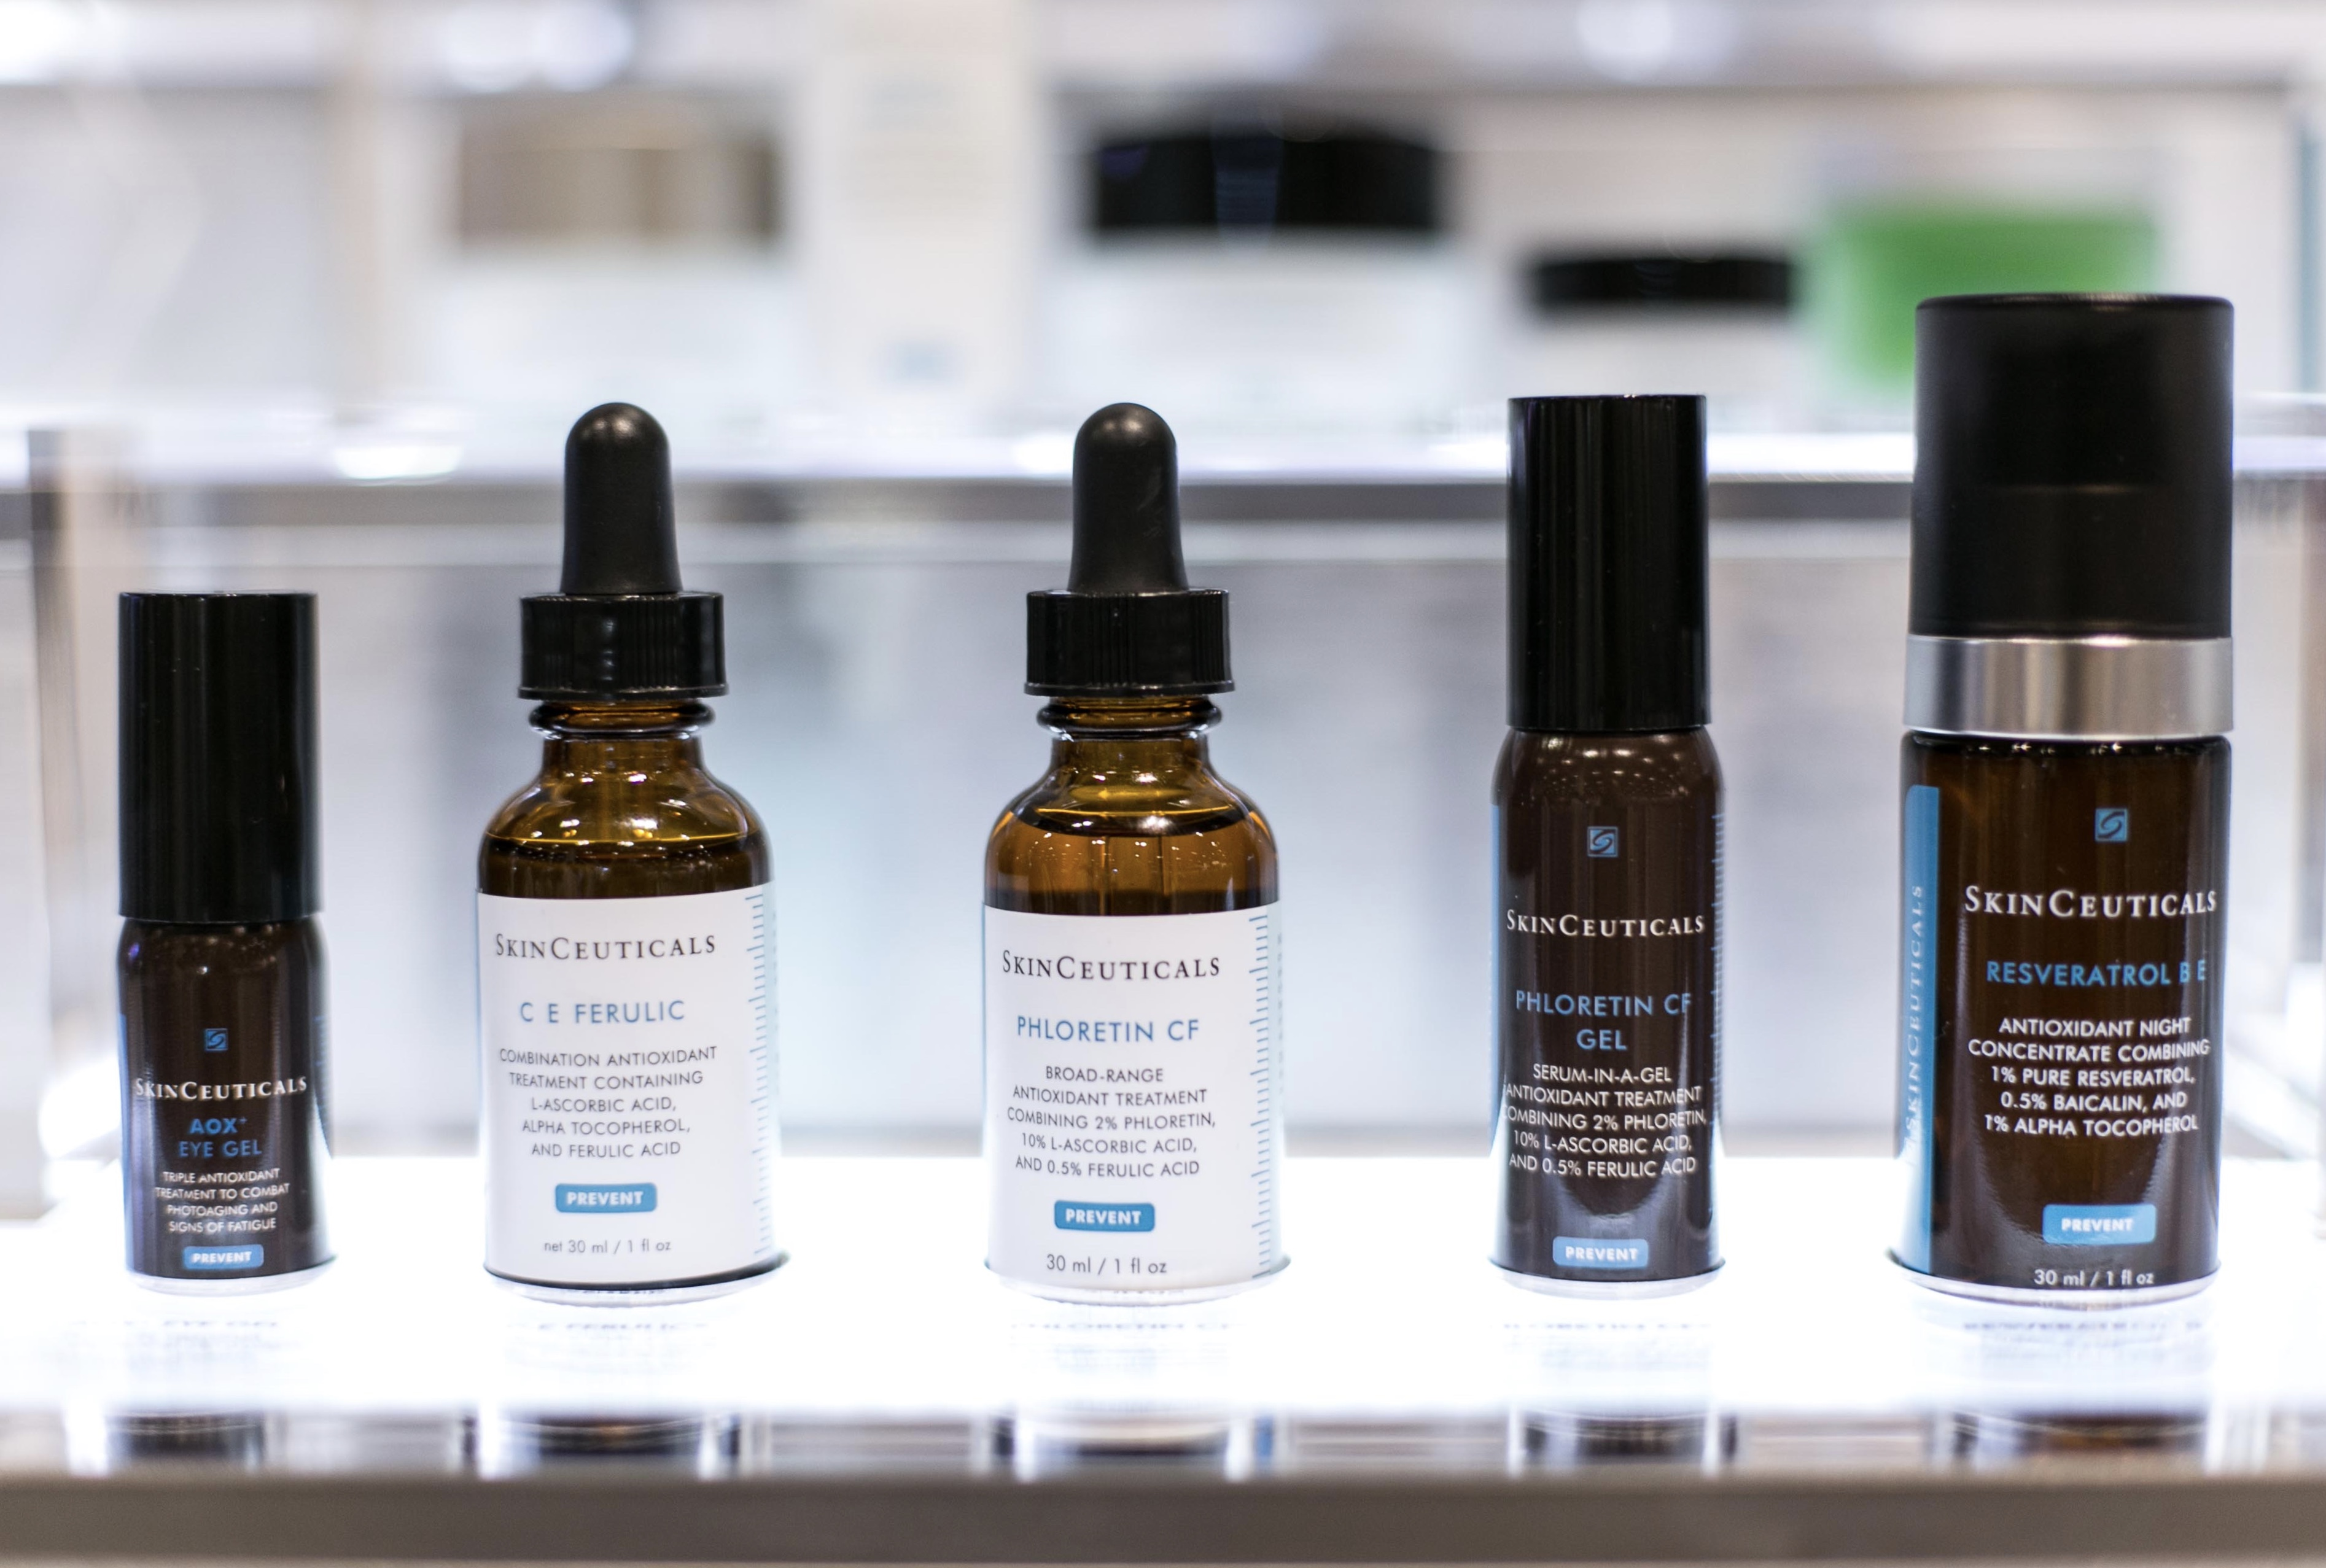 Skin Ceuticals at AAD Conference